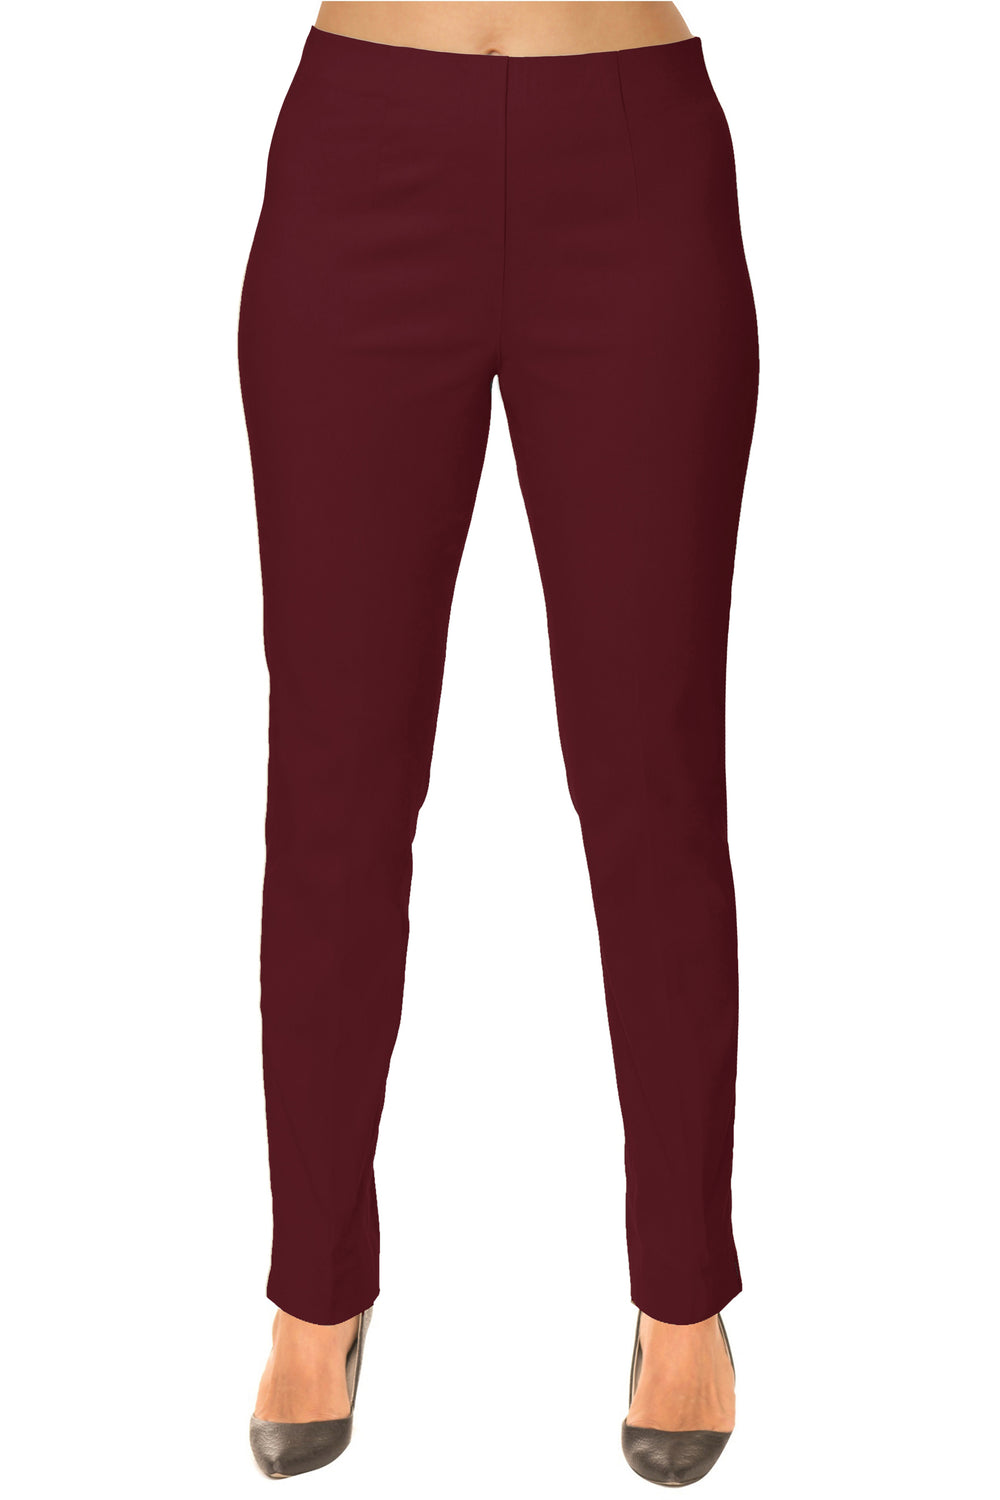 Sasha Pant - Fashion Colors